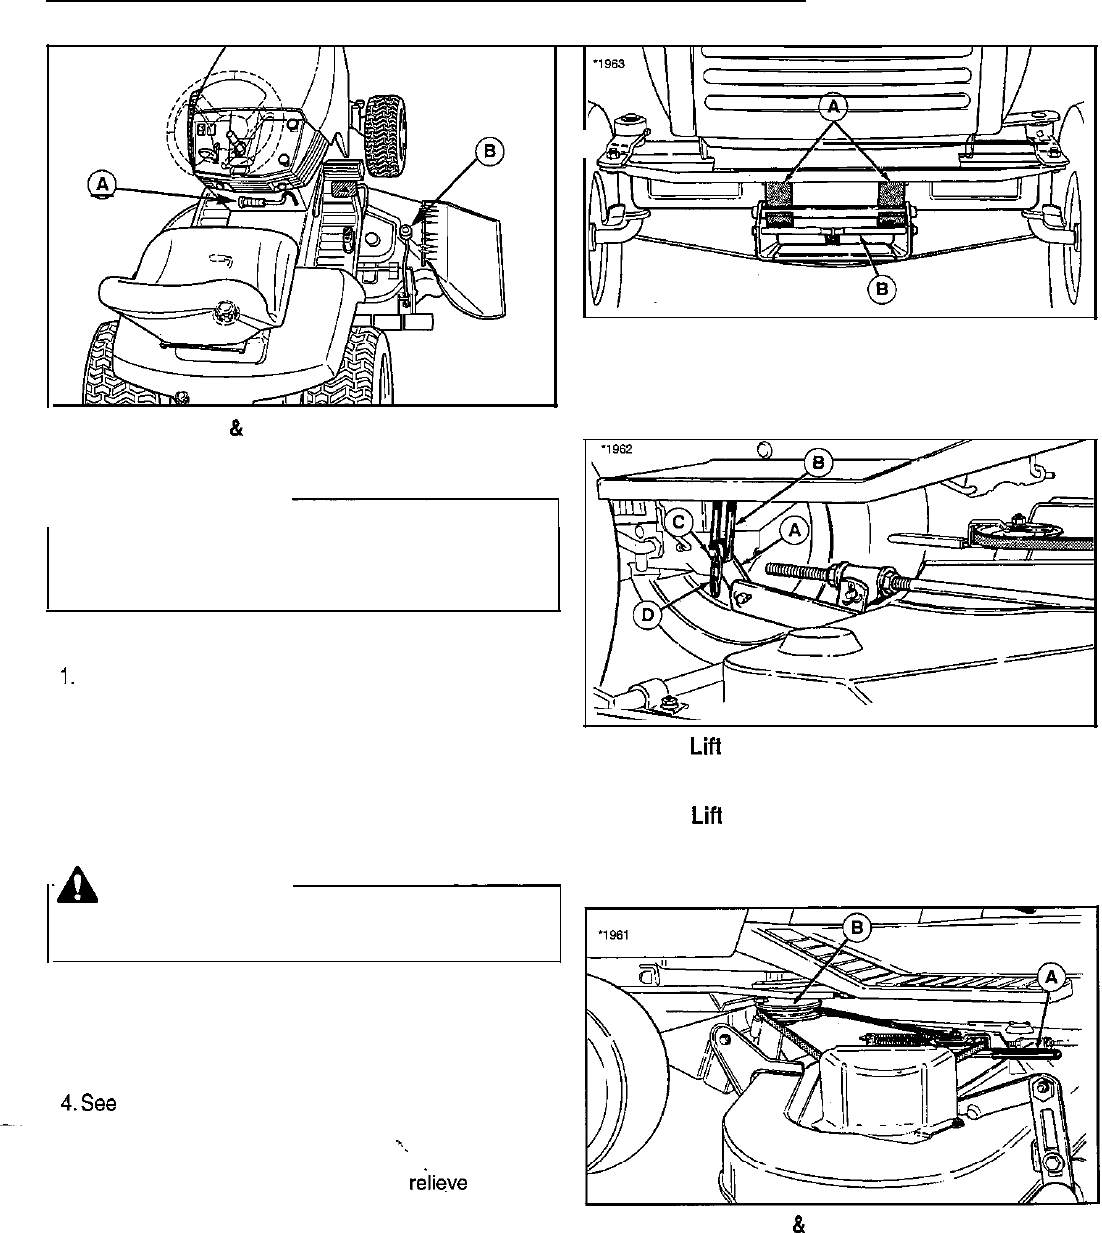 Page 19 of Simplicity Lawn Mower 16HP V-Twin User Guide